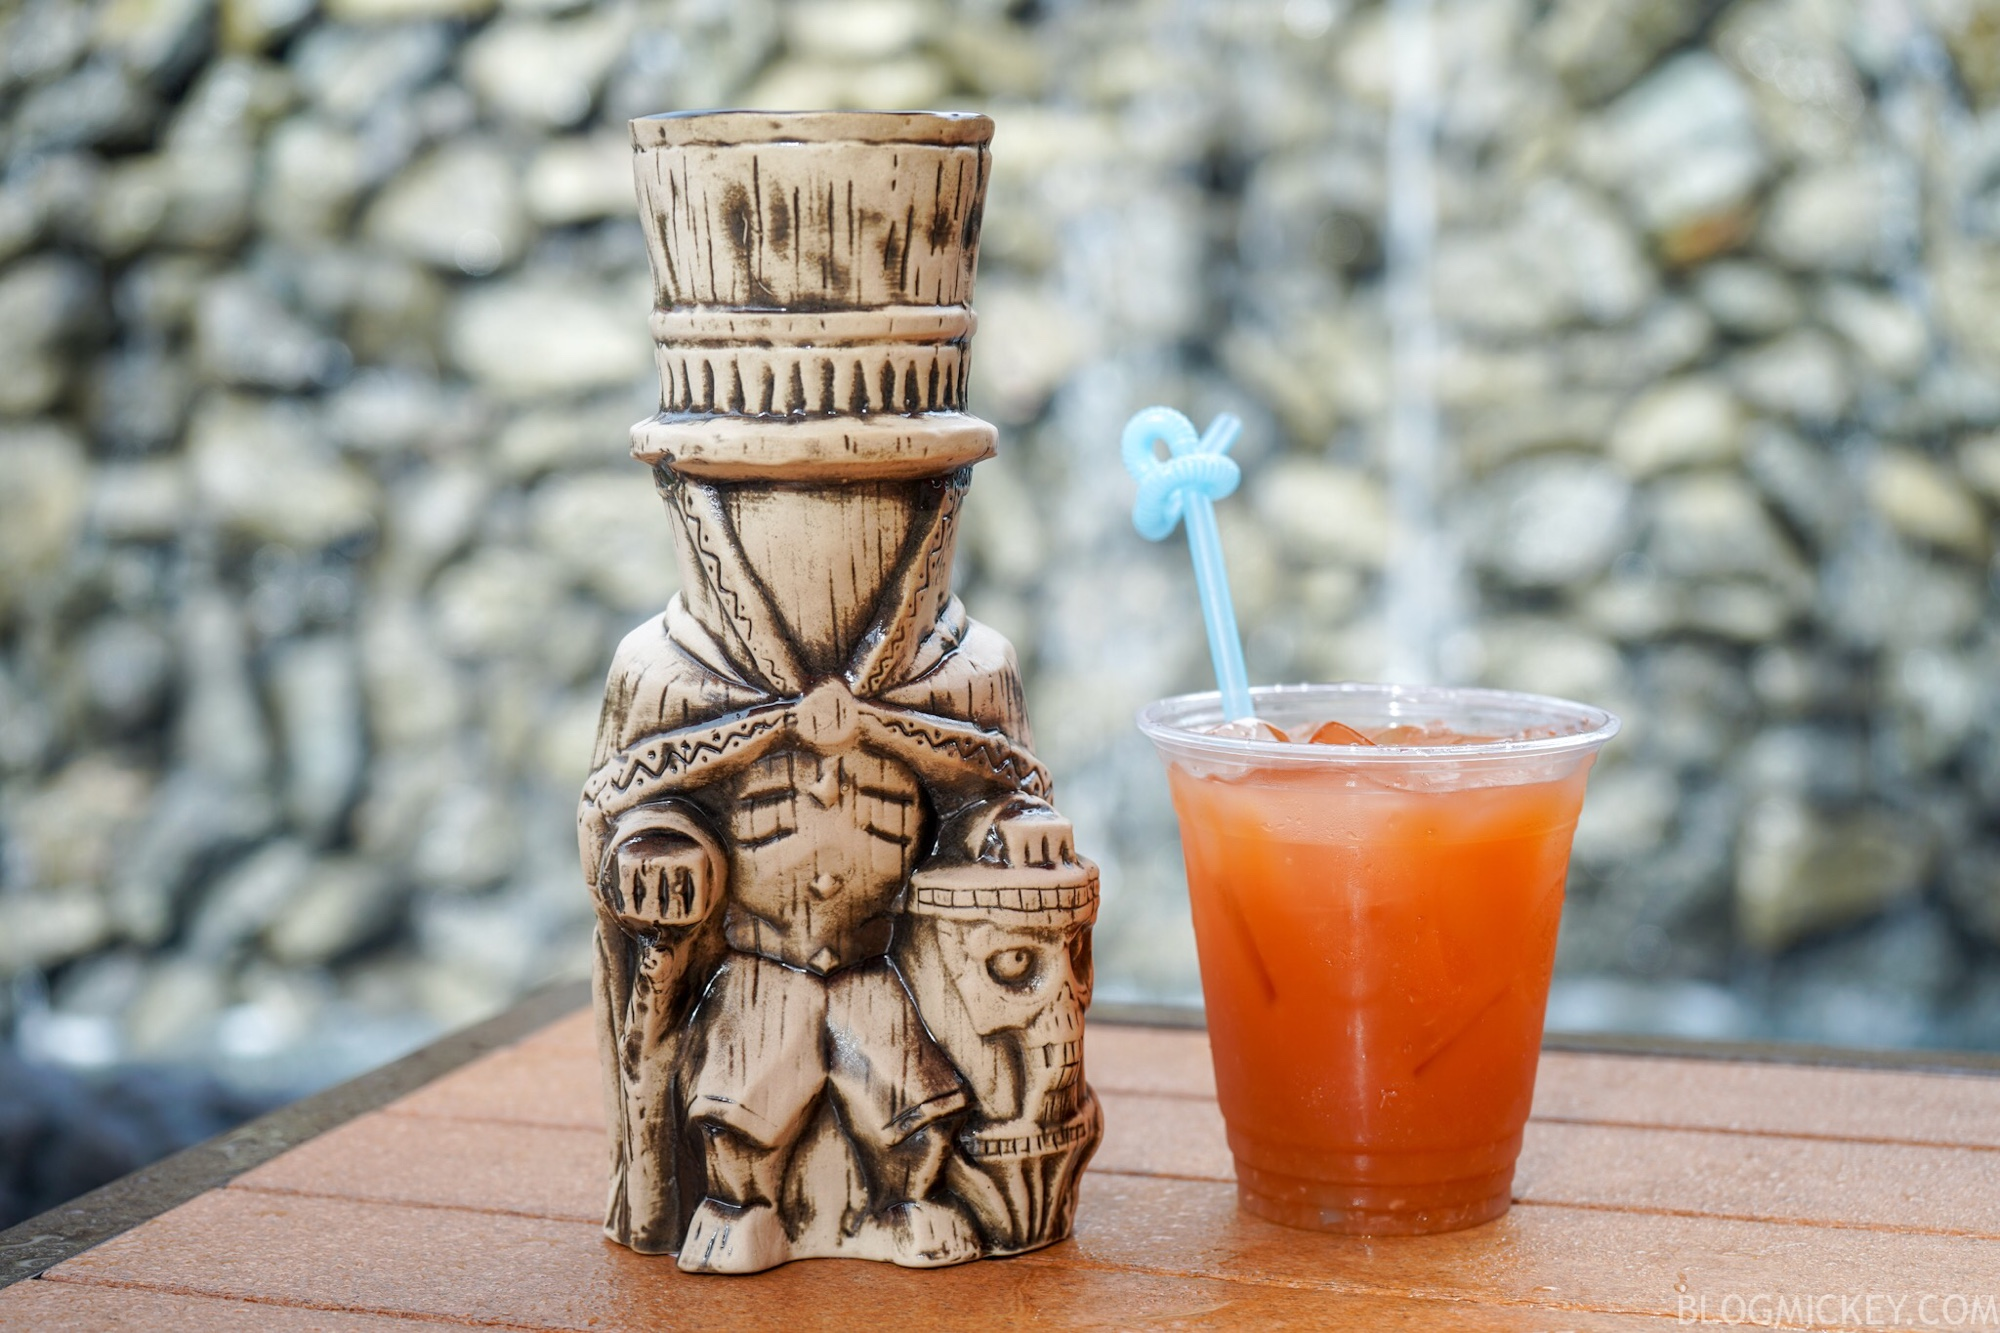 Trader Sams Grotto Halloween 2020 PHOTOS, REVIEW: Hatbox Ghost Tiki Mug Debuts for 2018 Halloween